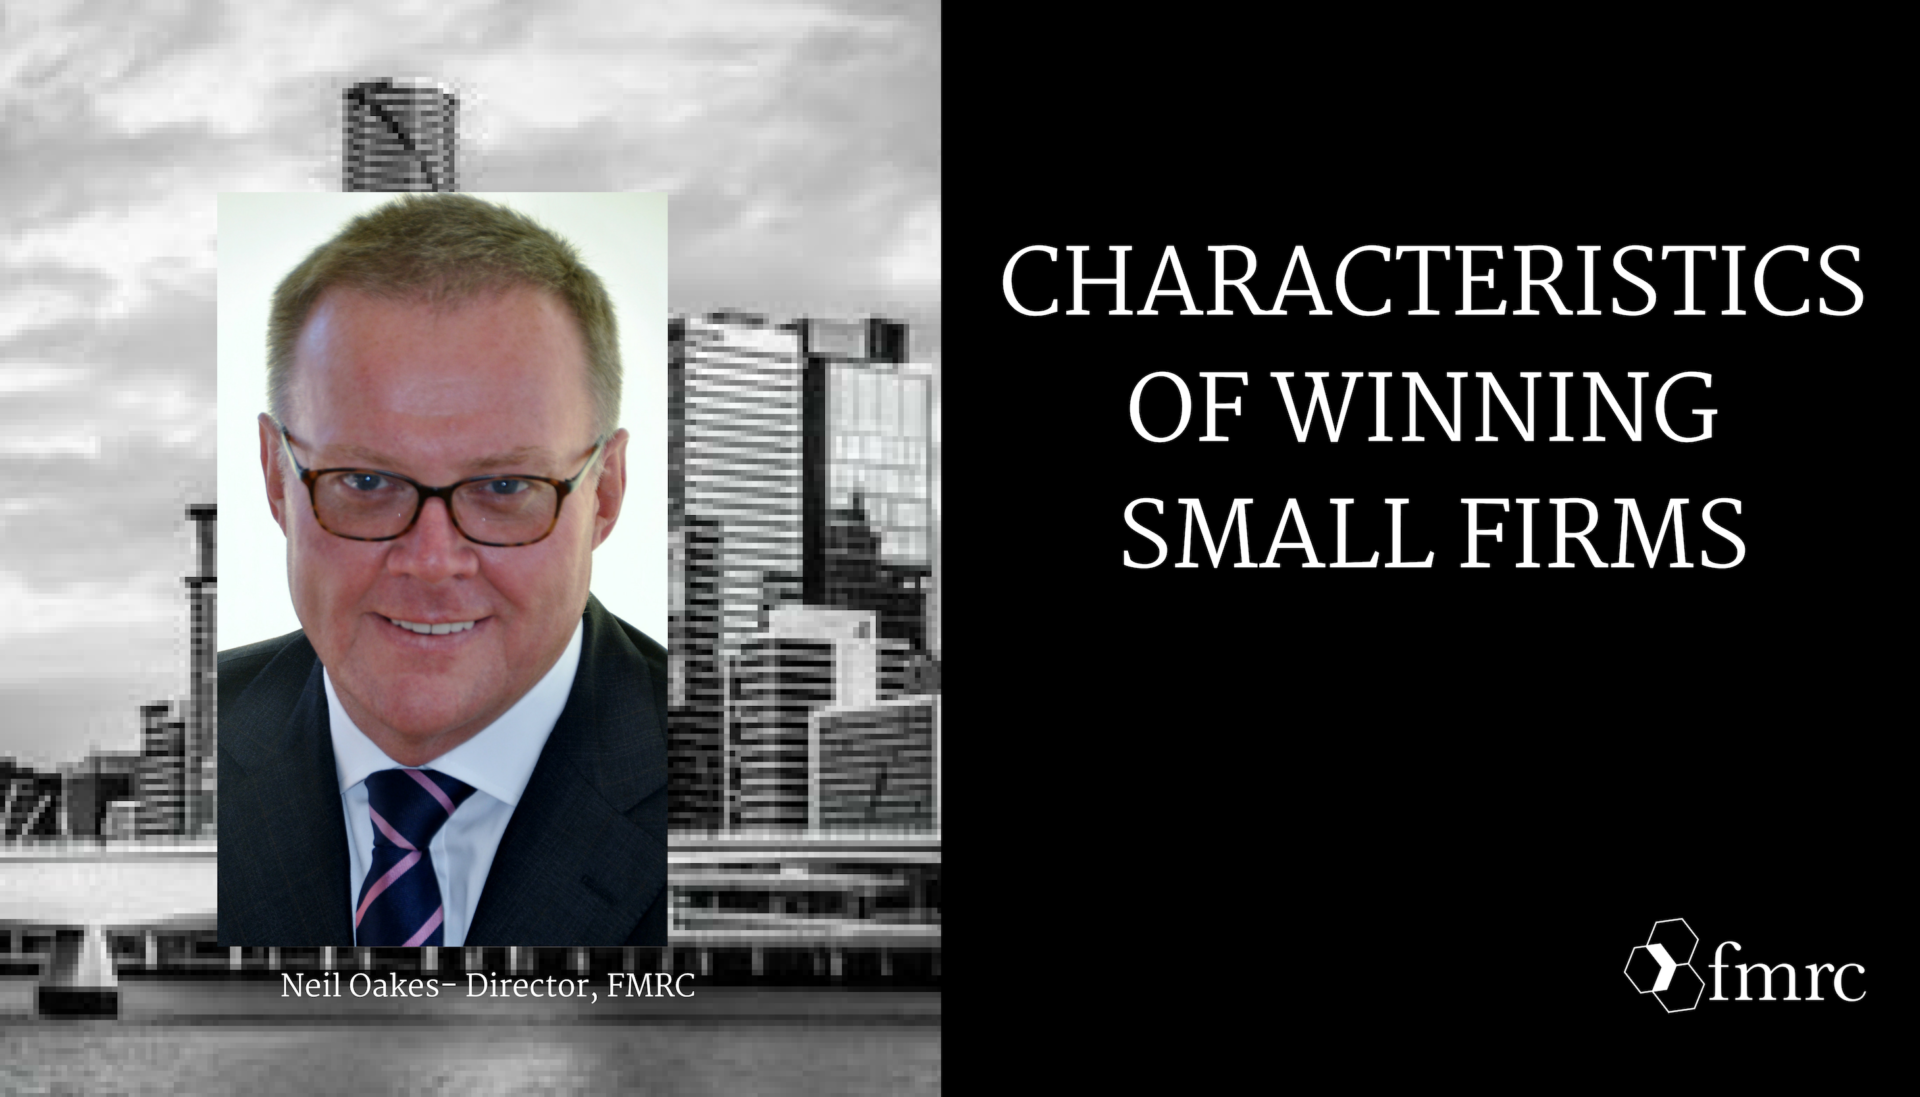 Characteristics of Winning Small Firms